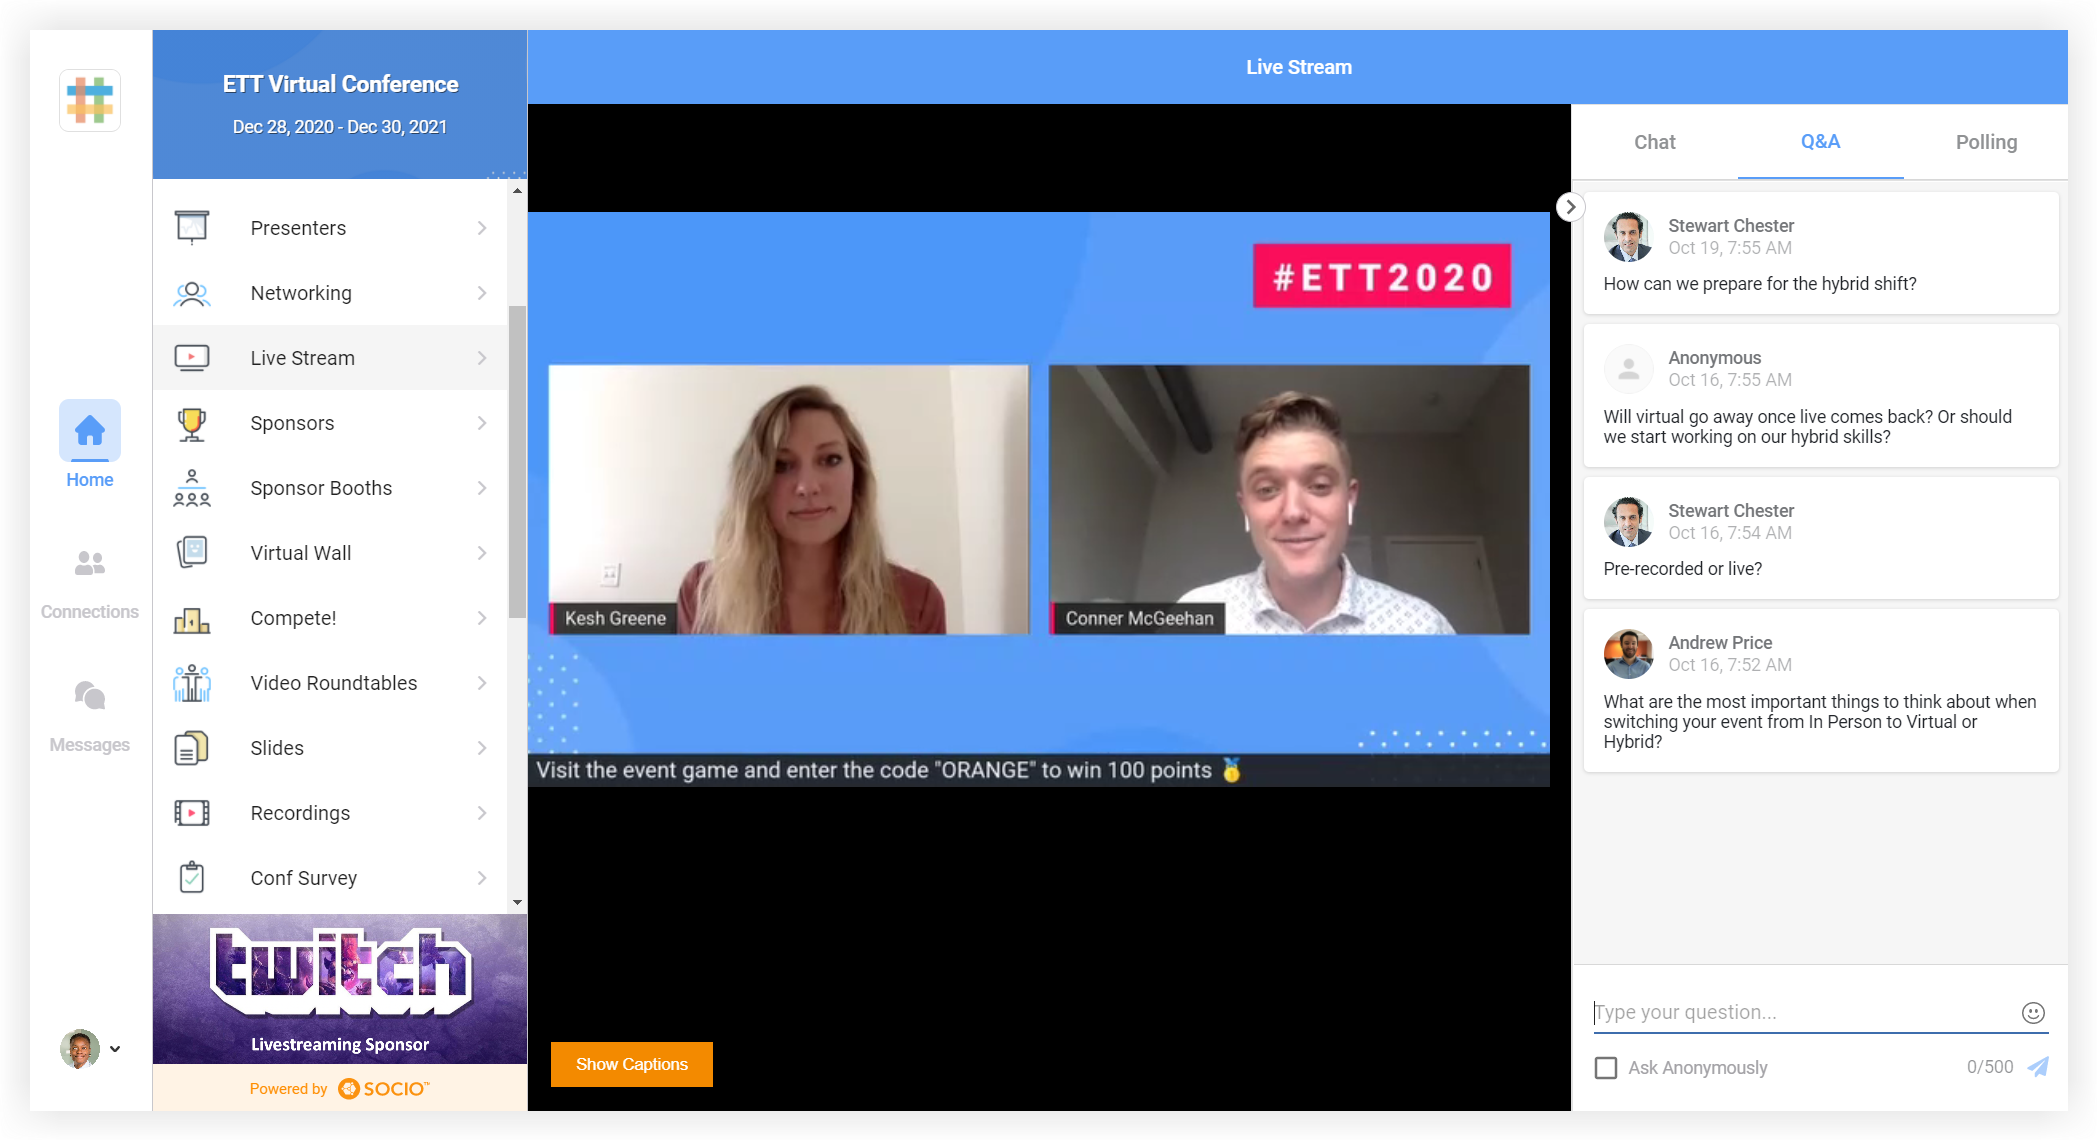 Screenshot of a live stream in the web app. Chat, Q&A, and Polling are enabled.